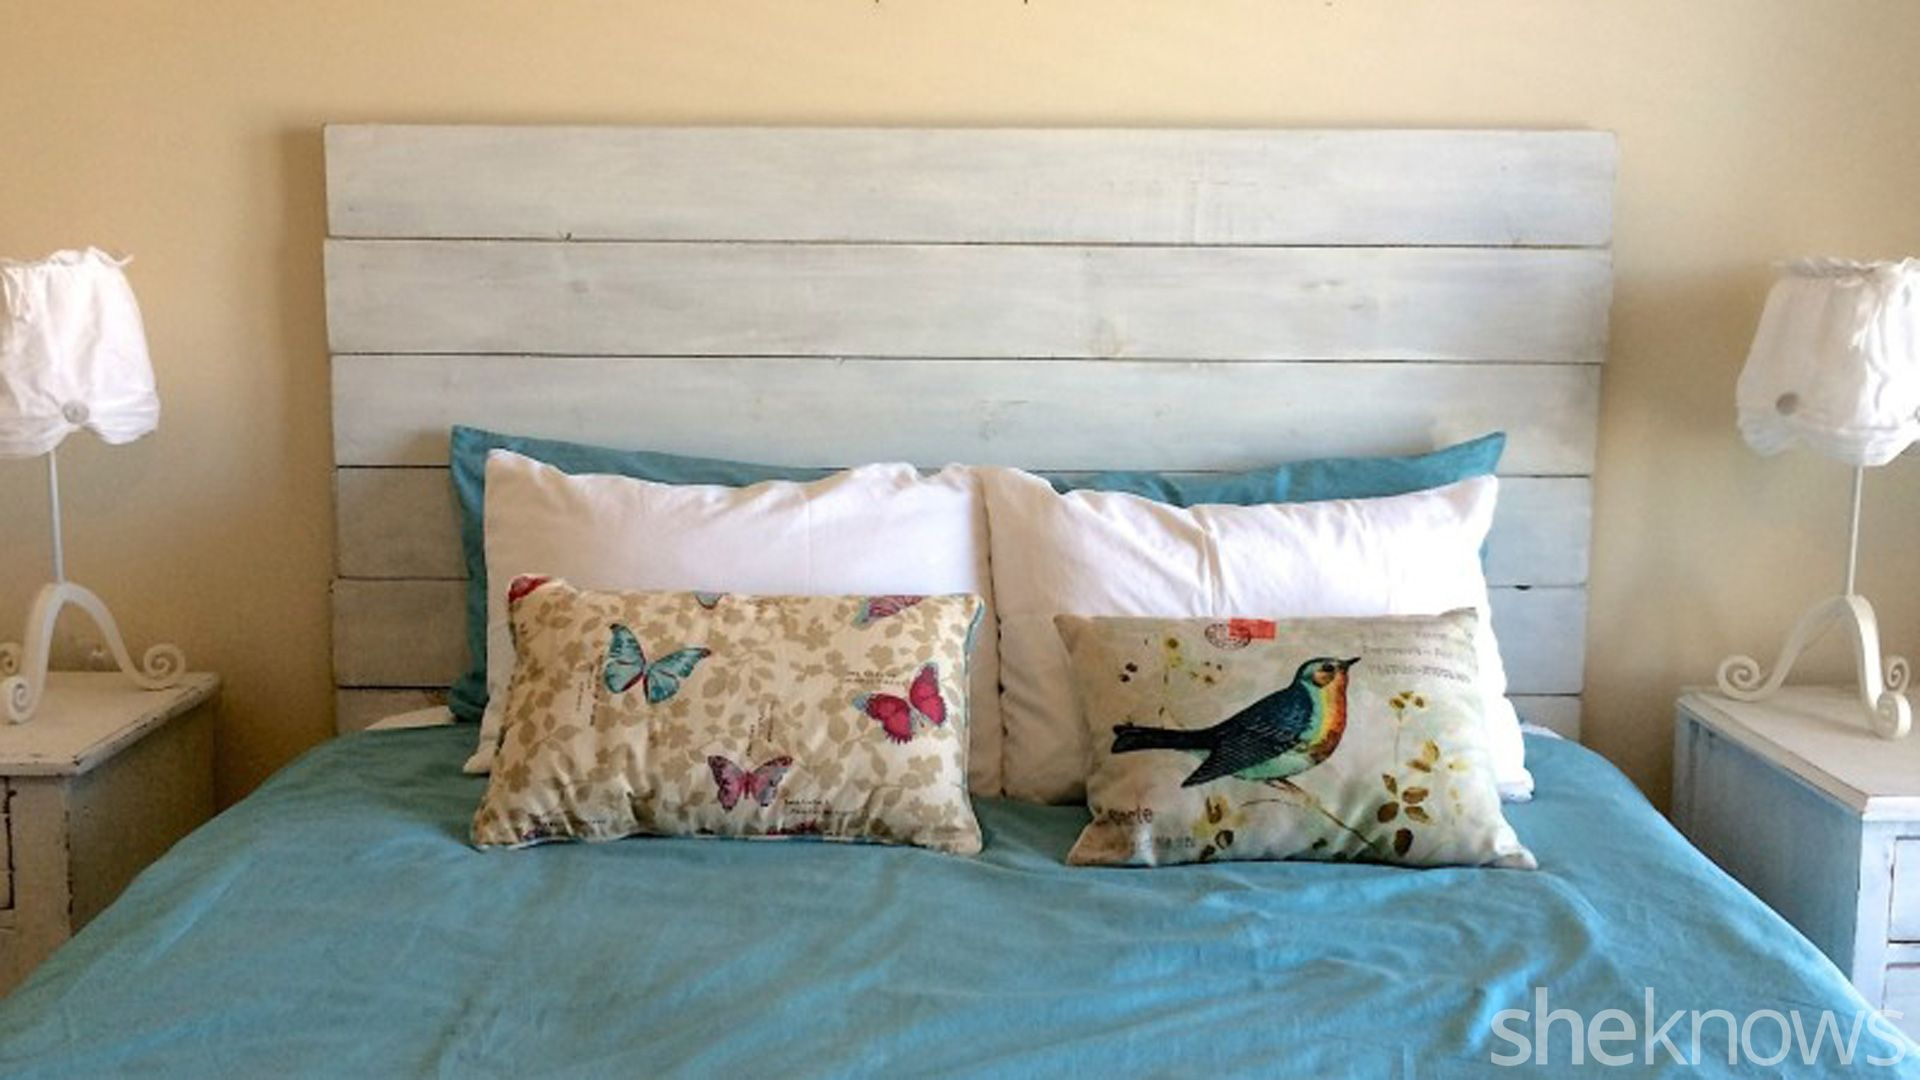 Best Make Your Own Rustic Wooden Headboard With This Simple 400 x 300